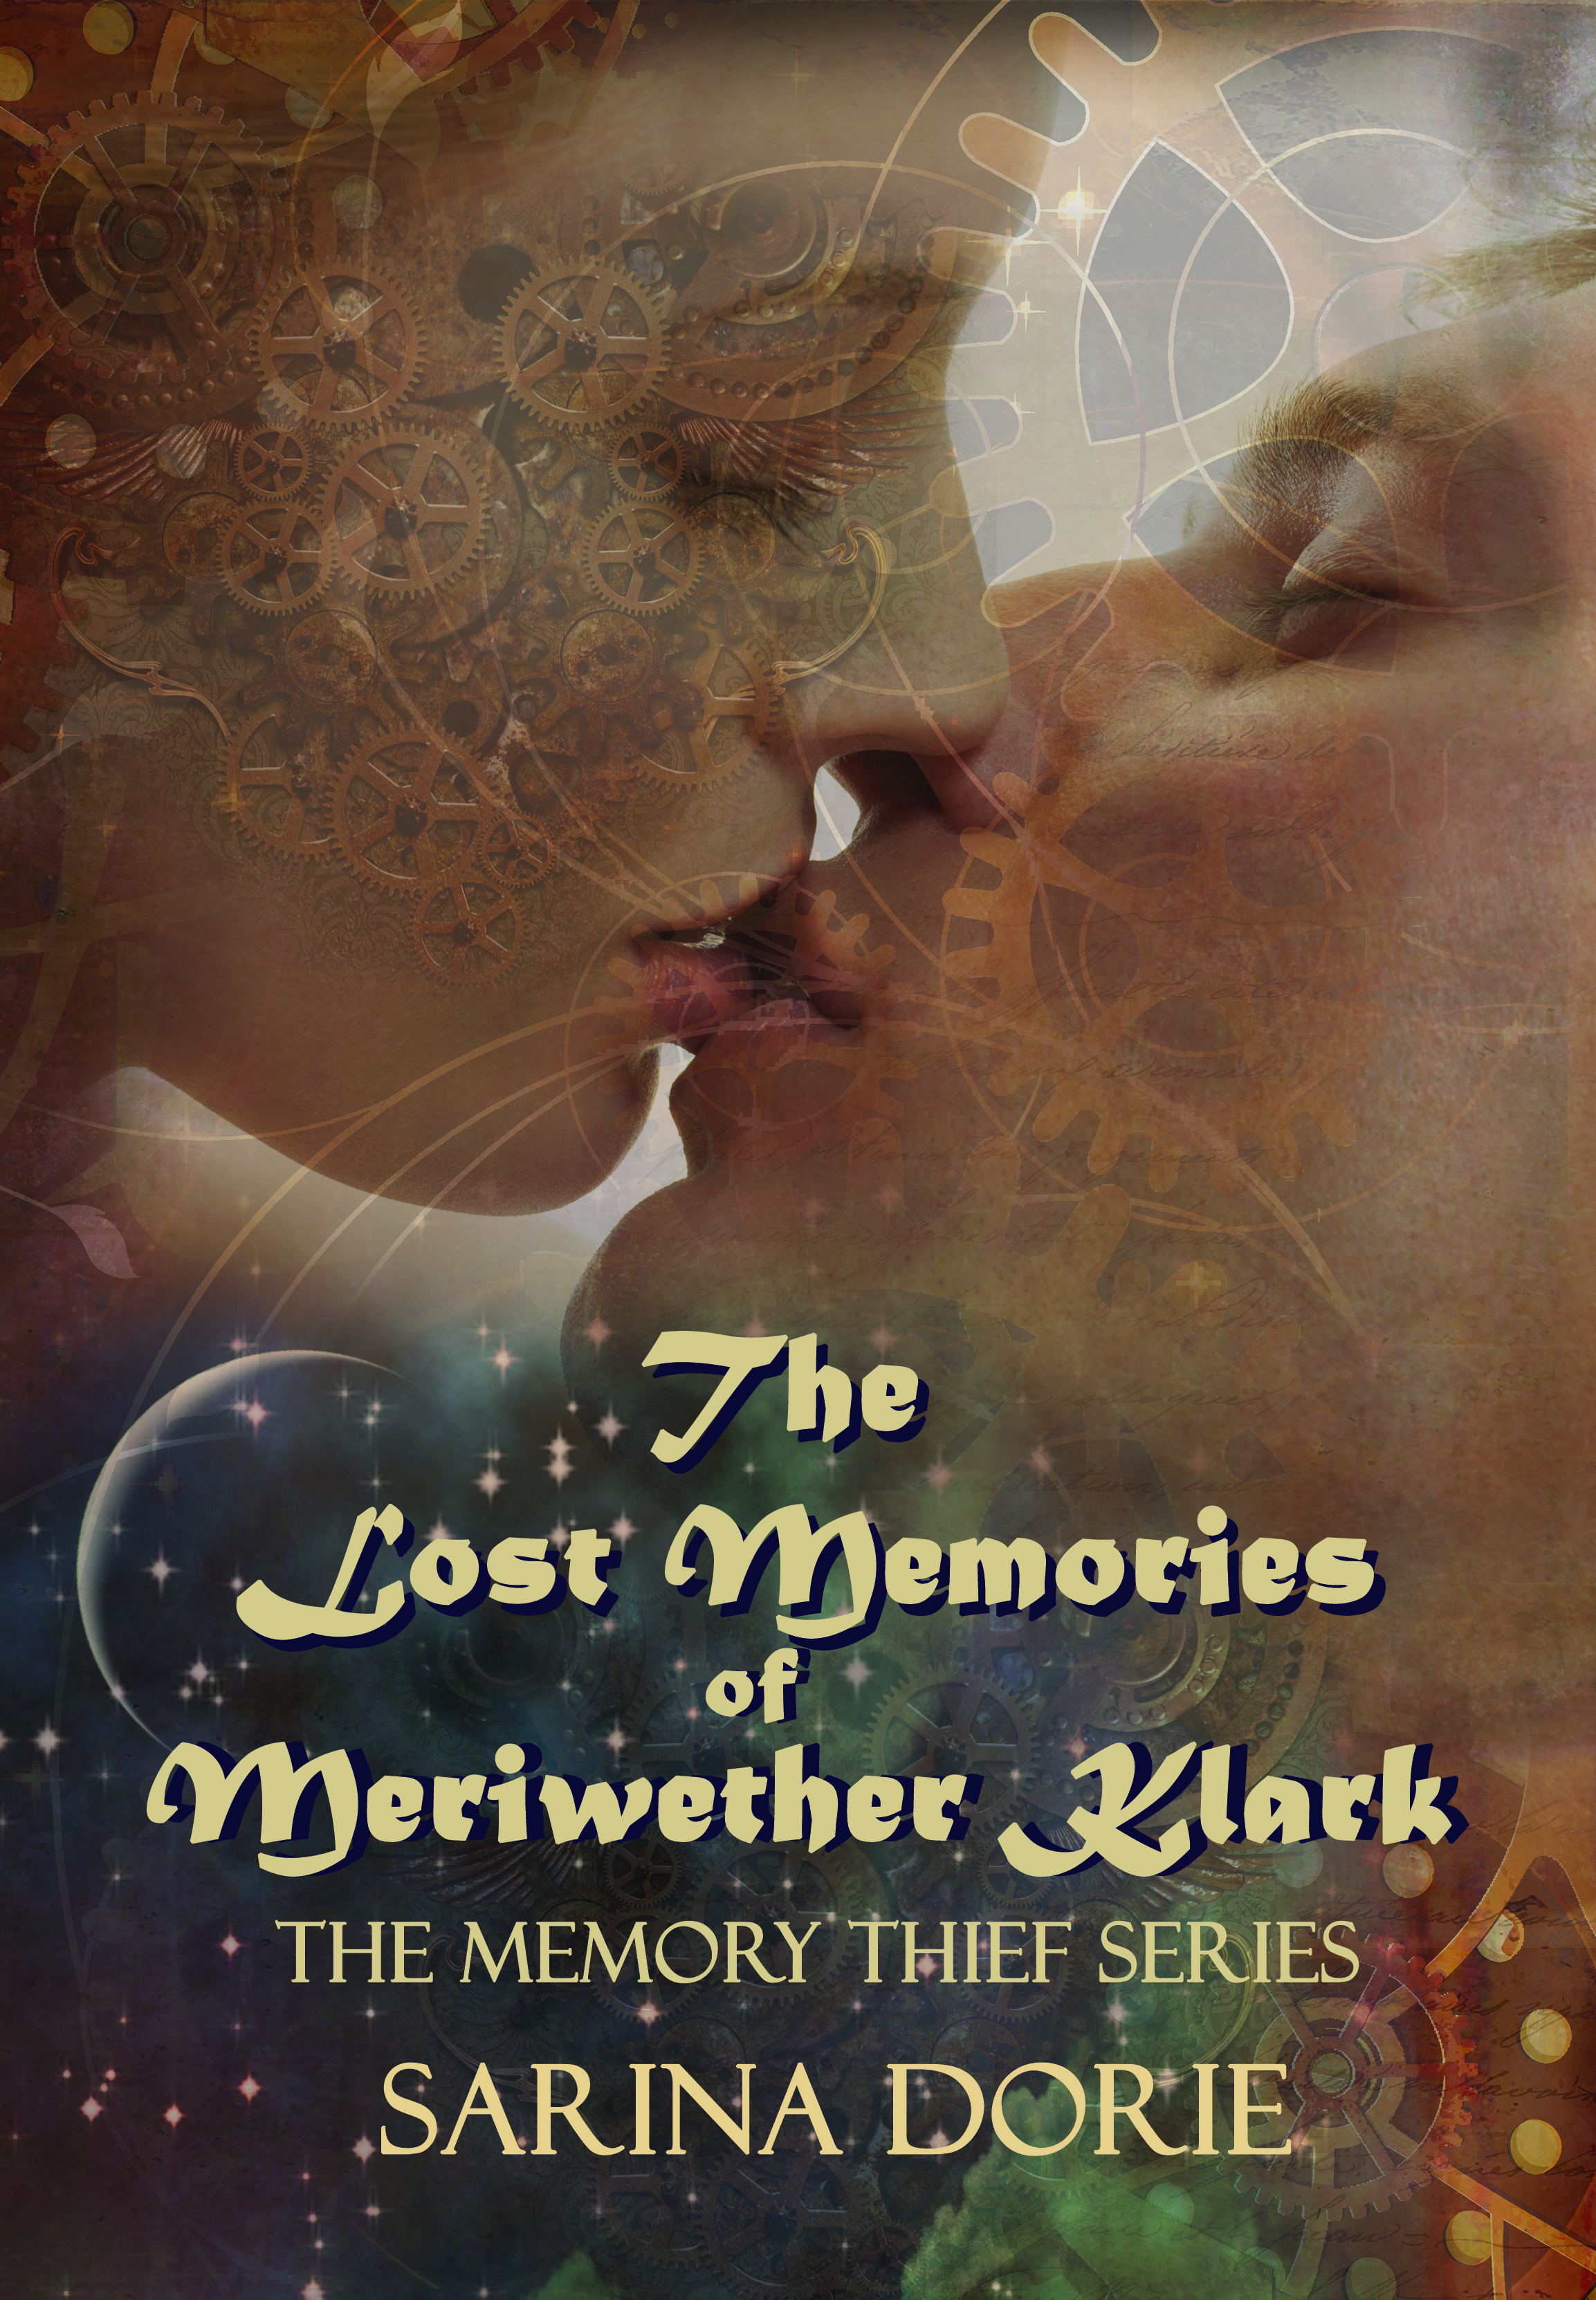 The Lost Memories of Meriwether Klark: a steampunk novel